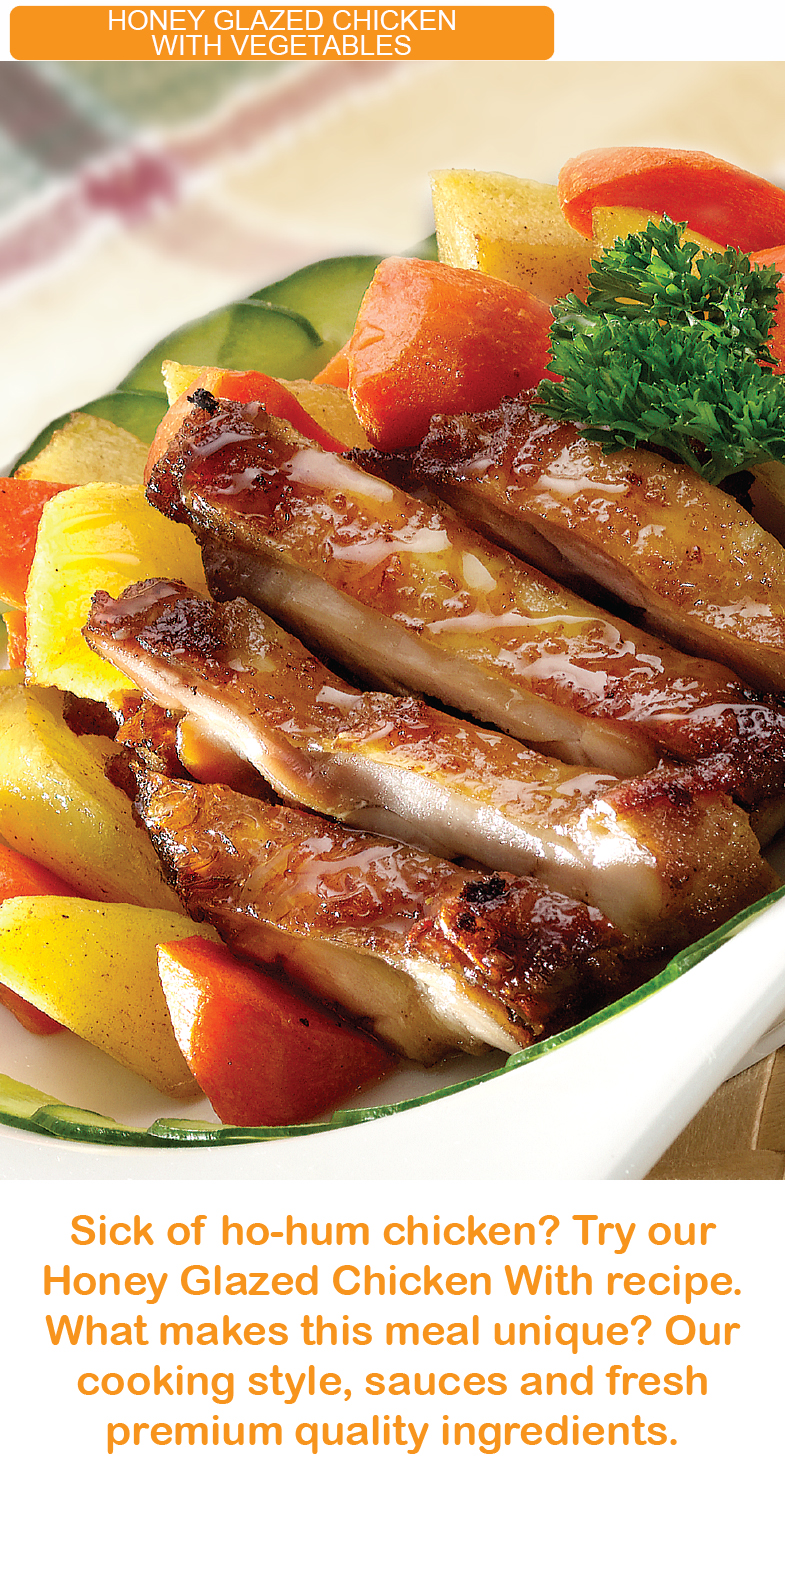 honey glazed chicken with vegetable kfi sri kulai kinabalu food industries signature products malaysia  microwavable in minutes